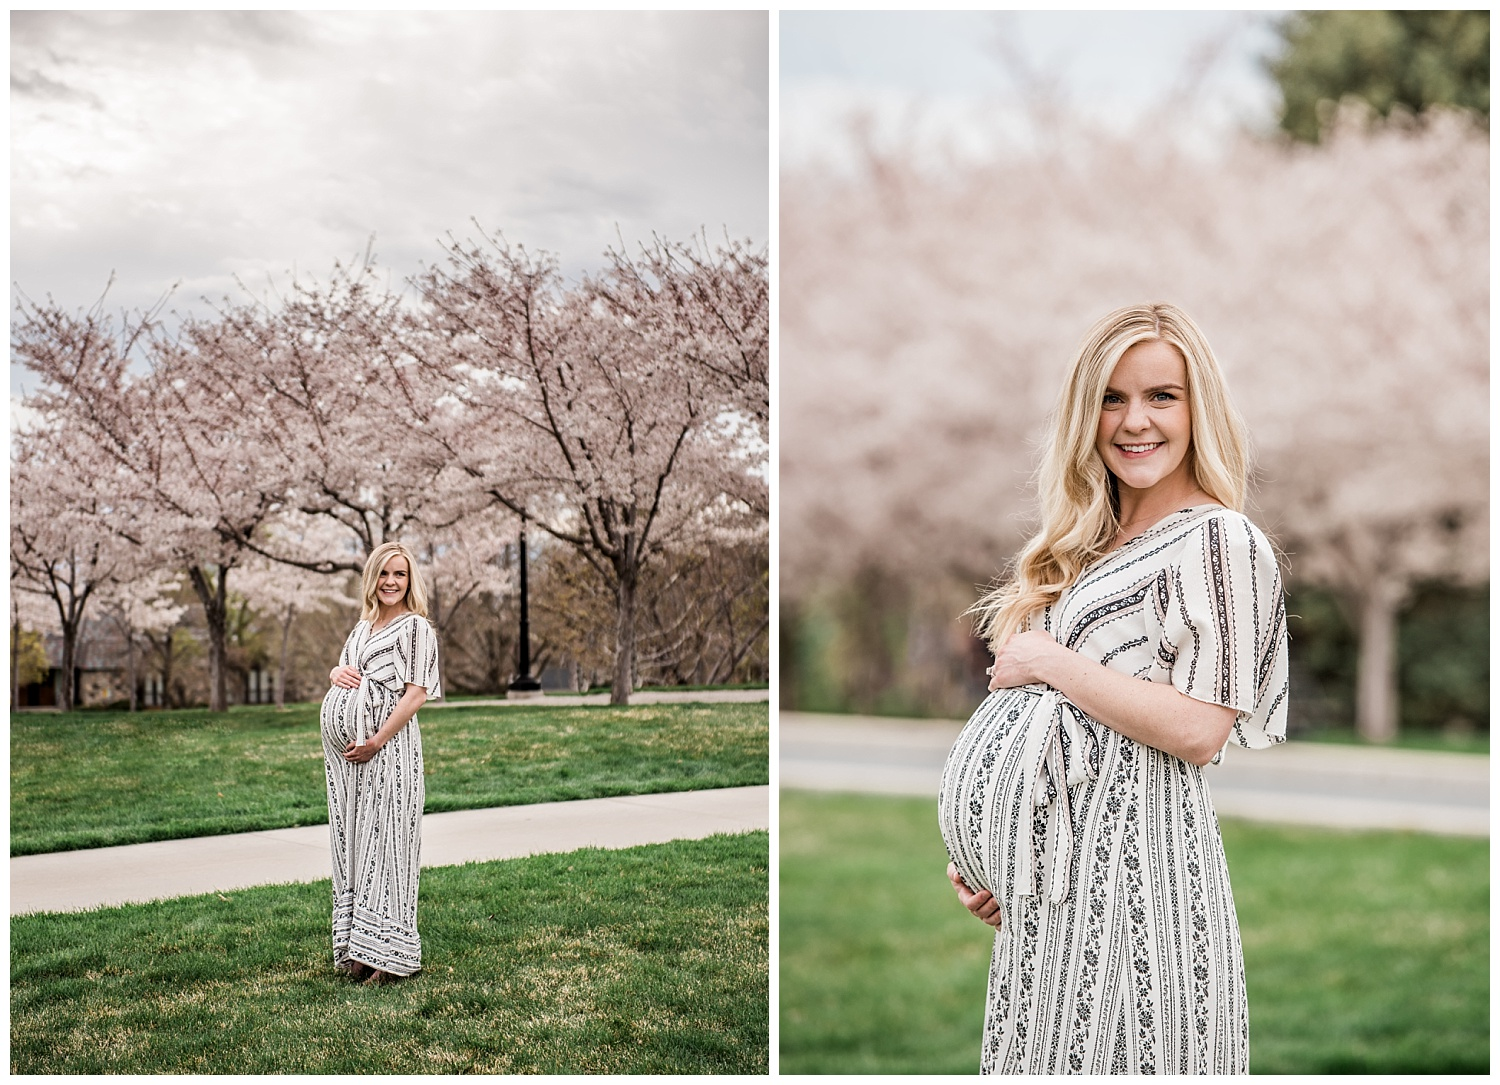 Dan Page Photography, Utah State Capitol Maternity Session, Spring Cherry Blossoms (6).jpg